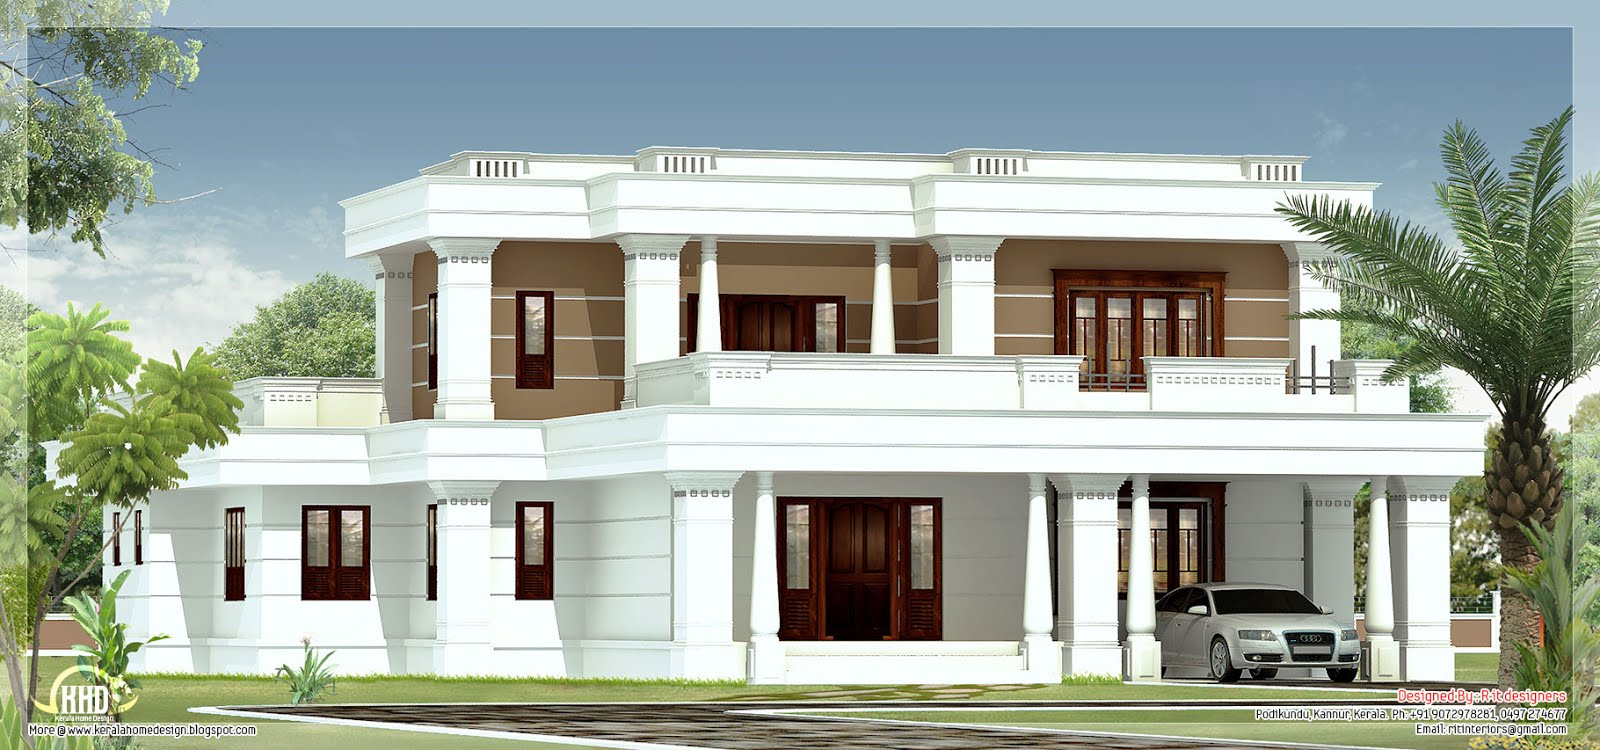 4 bedroom flat roof villa house design plans for Villa house plans